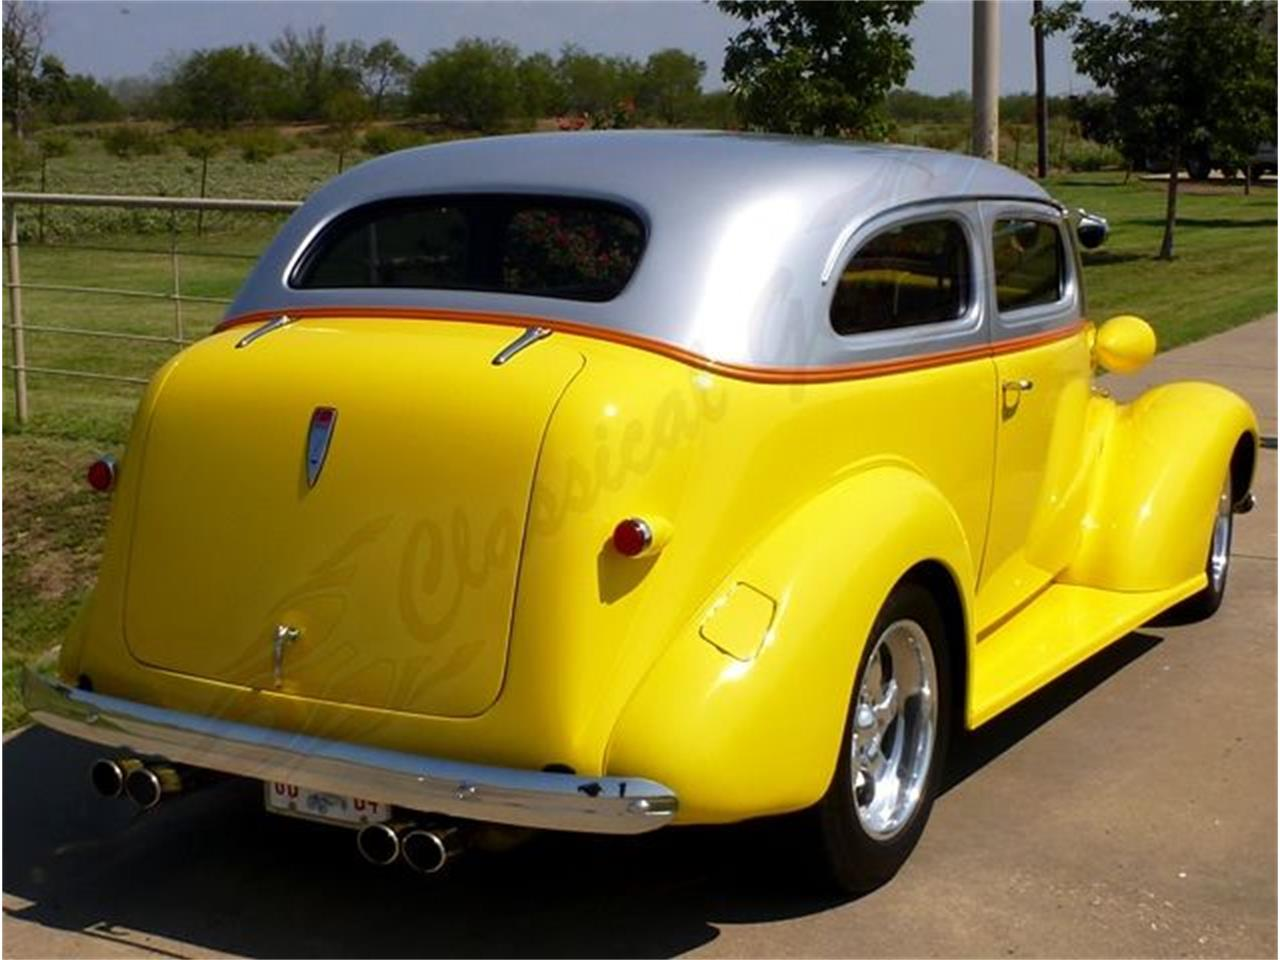 1938 chevrolet sedan for sale cc 444351 for 1938 chevy 4 door sedan for sale